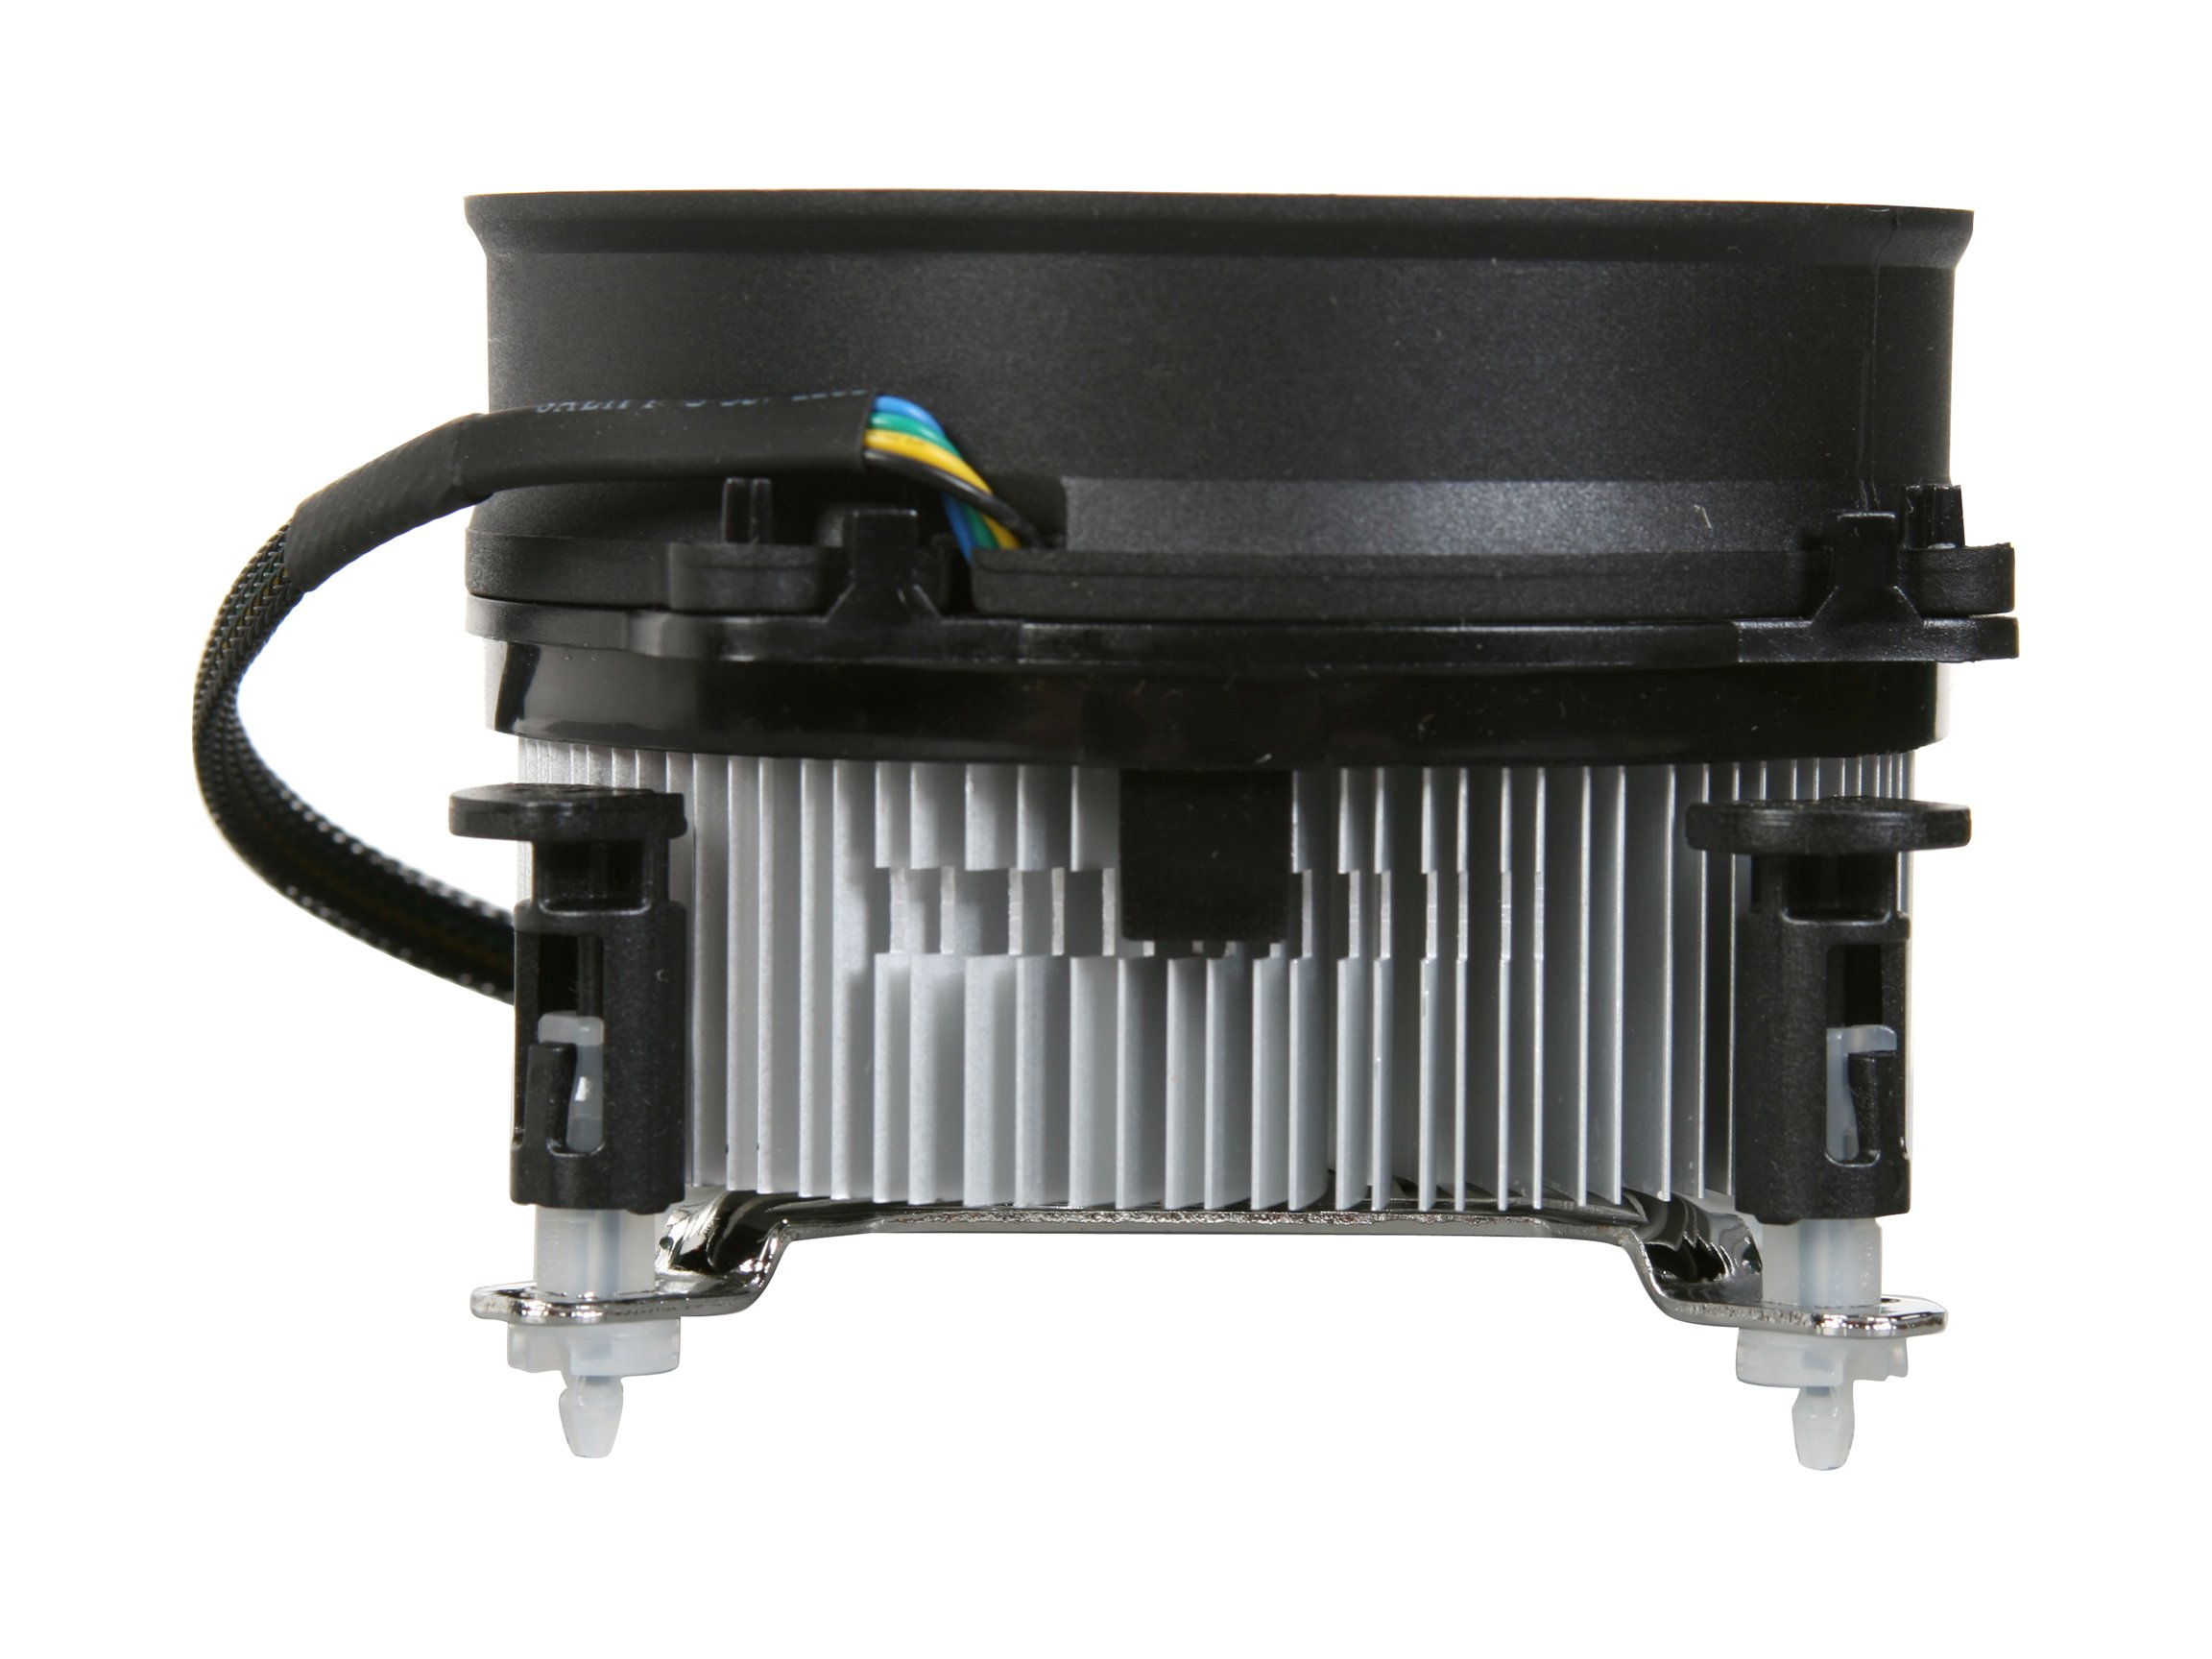 Rosewill RCX-Z90-AL 92mm Sleeve CPU Cooler by Rosewill (Image #2)